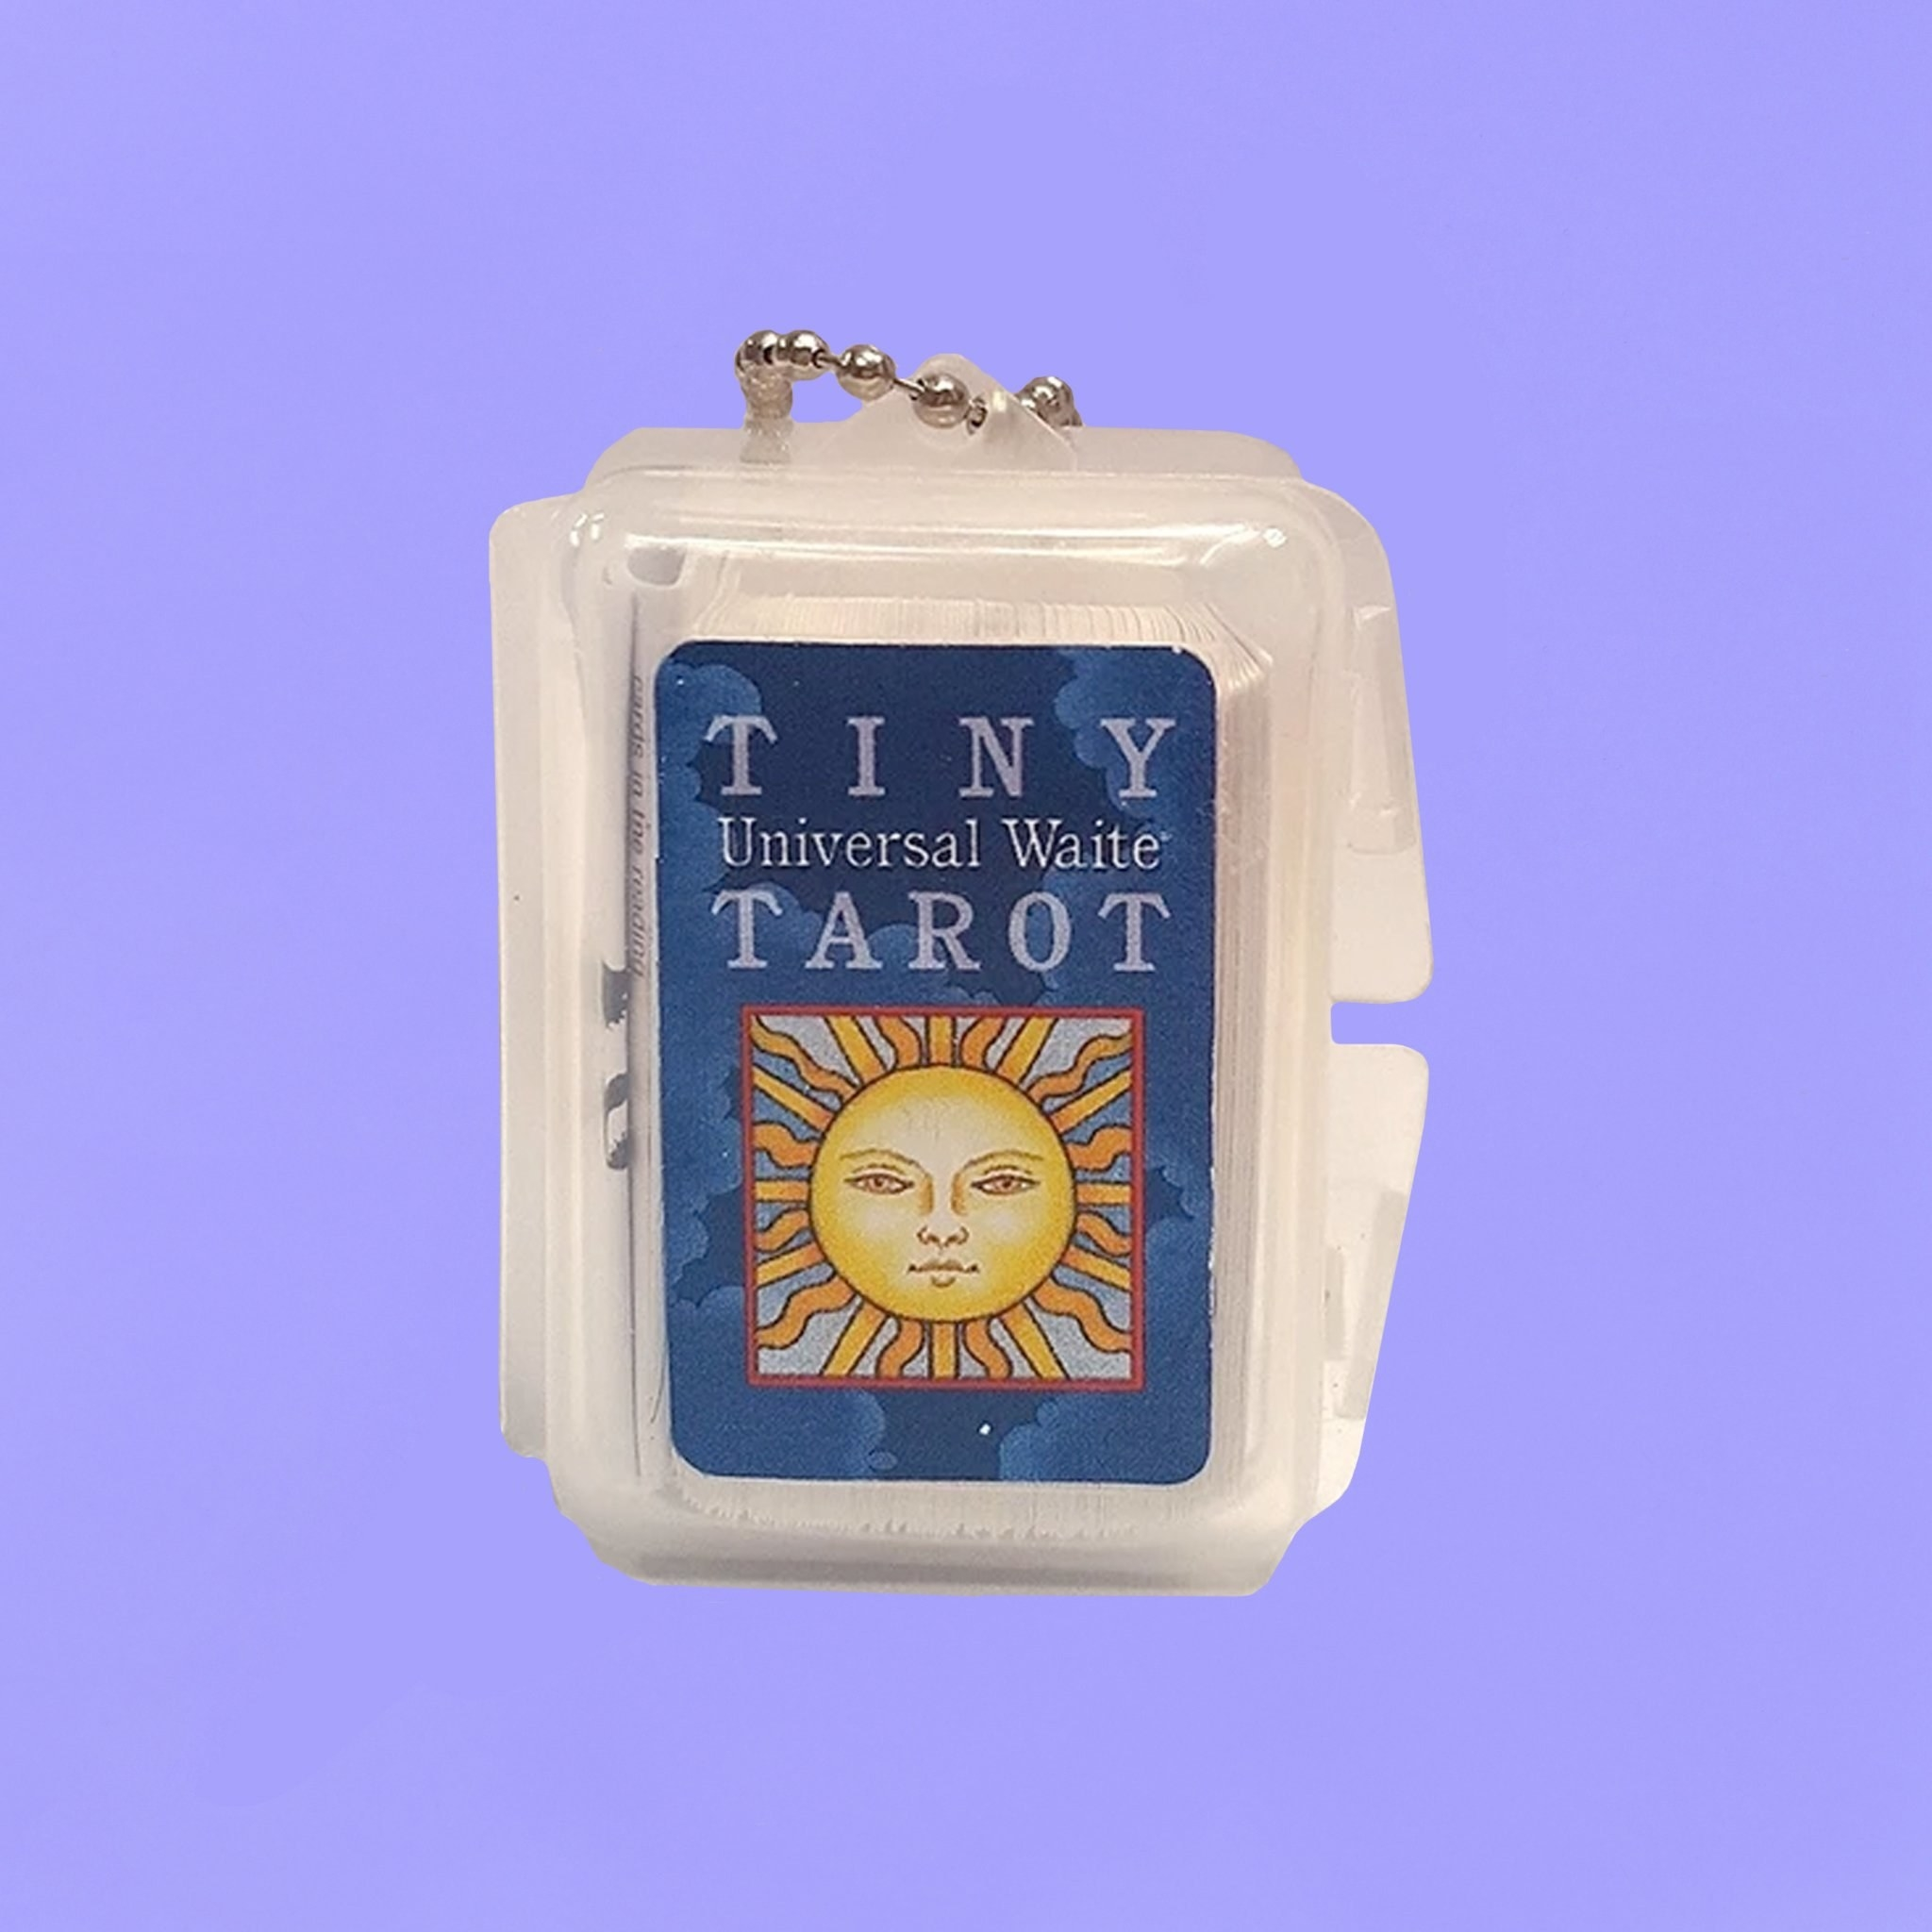 plastic case with small tarot cards inside